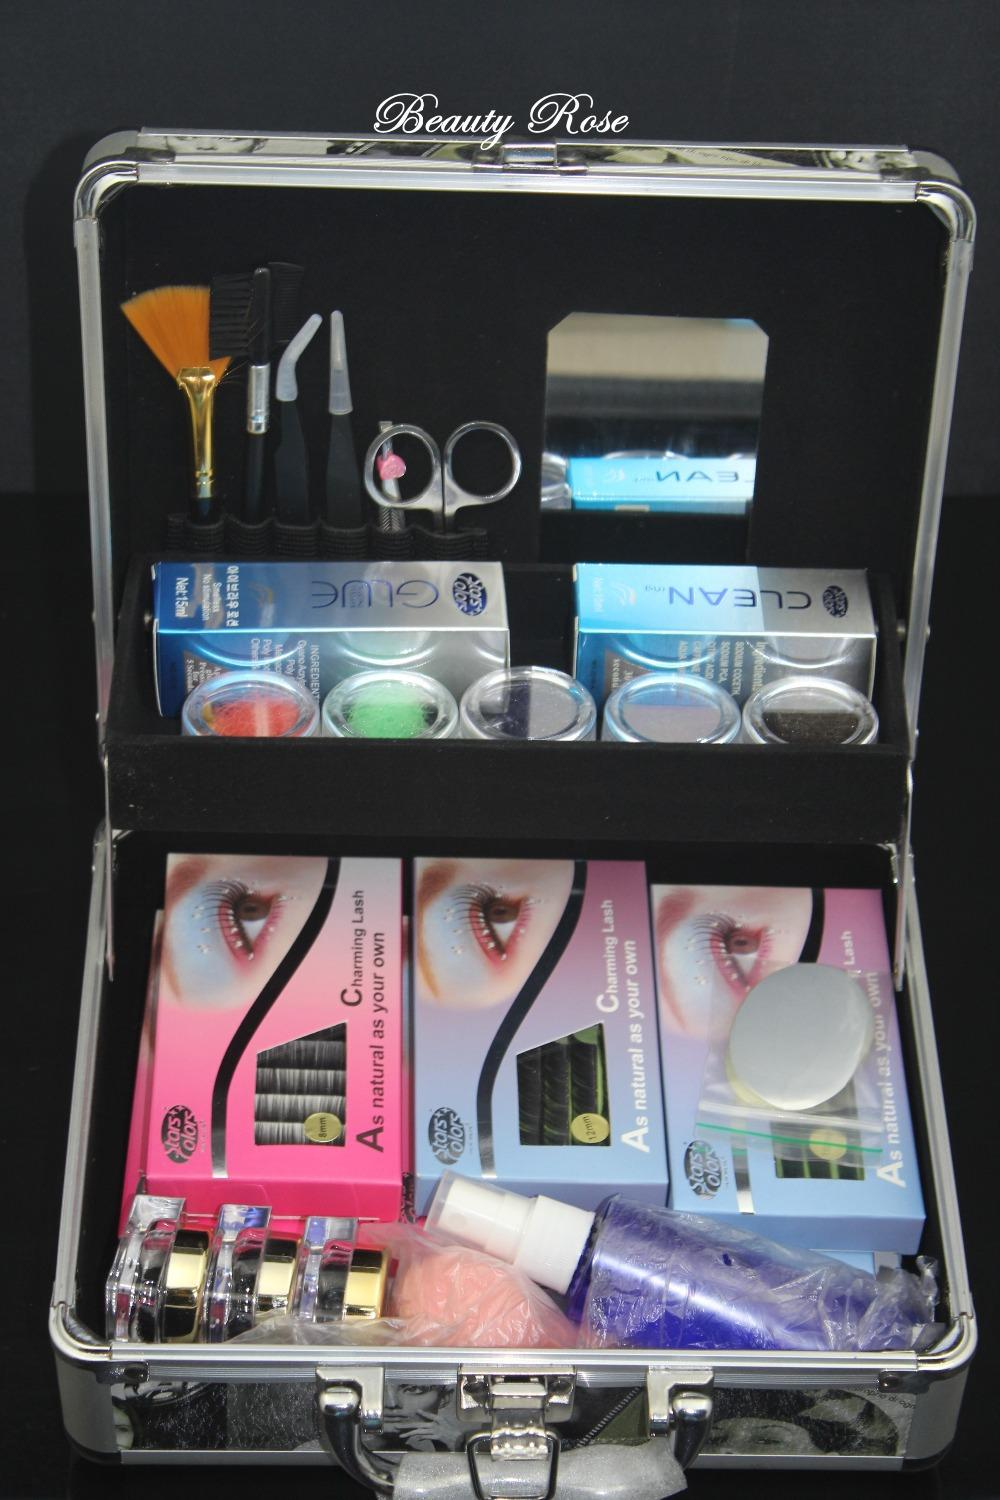 Top Sale Professional Korea Eyelash Grafting False Eyelashes Extension Full Set Lashes and Eyelash Glue Makeup Kits with Case*